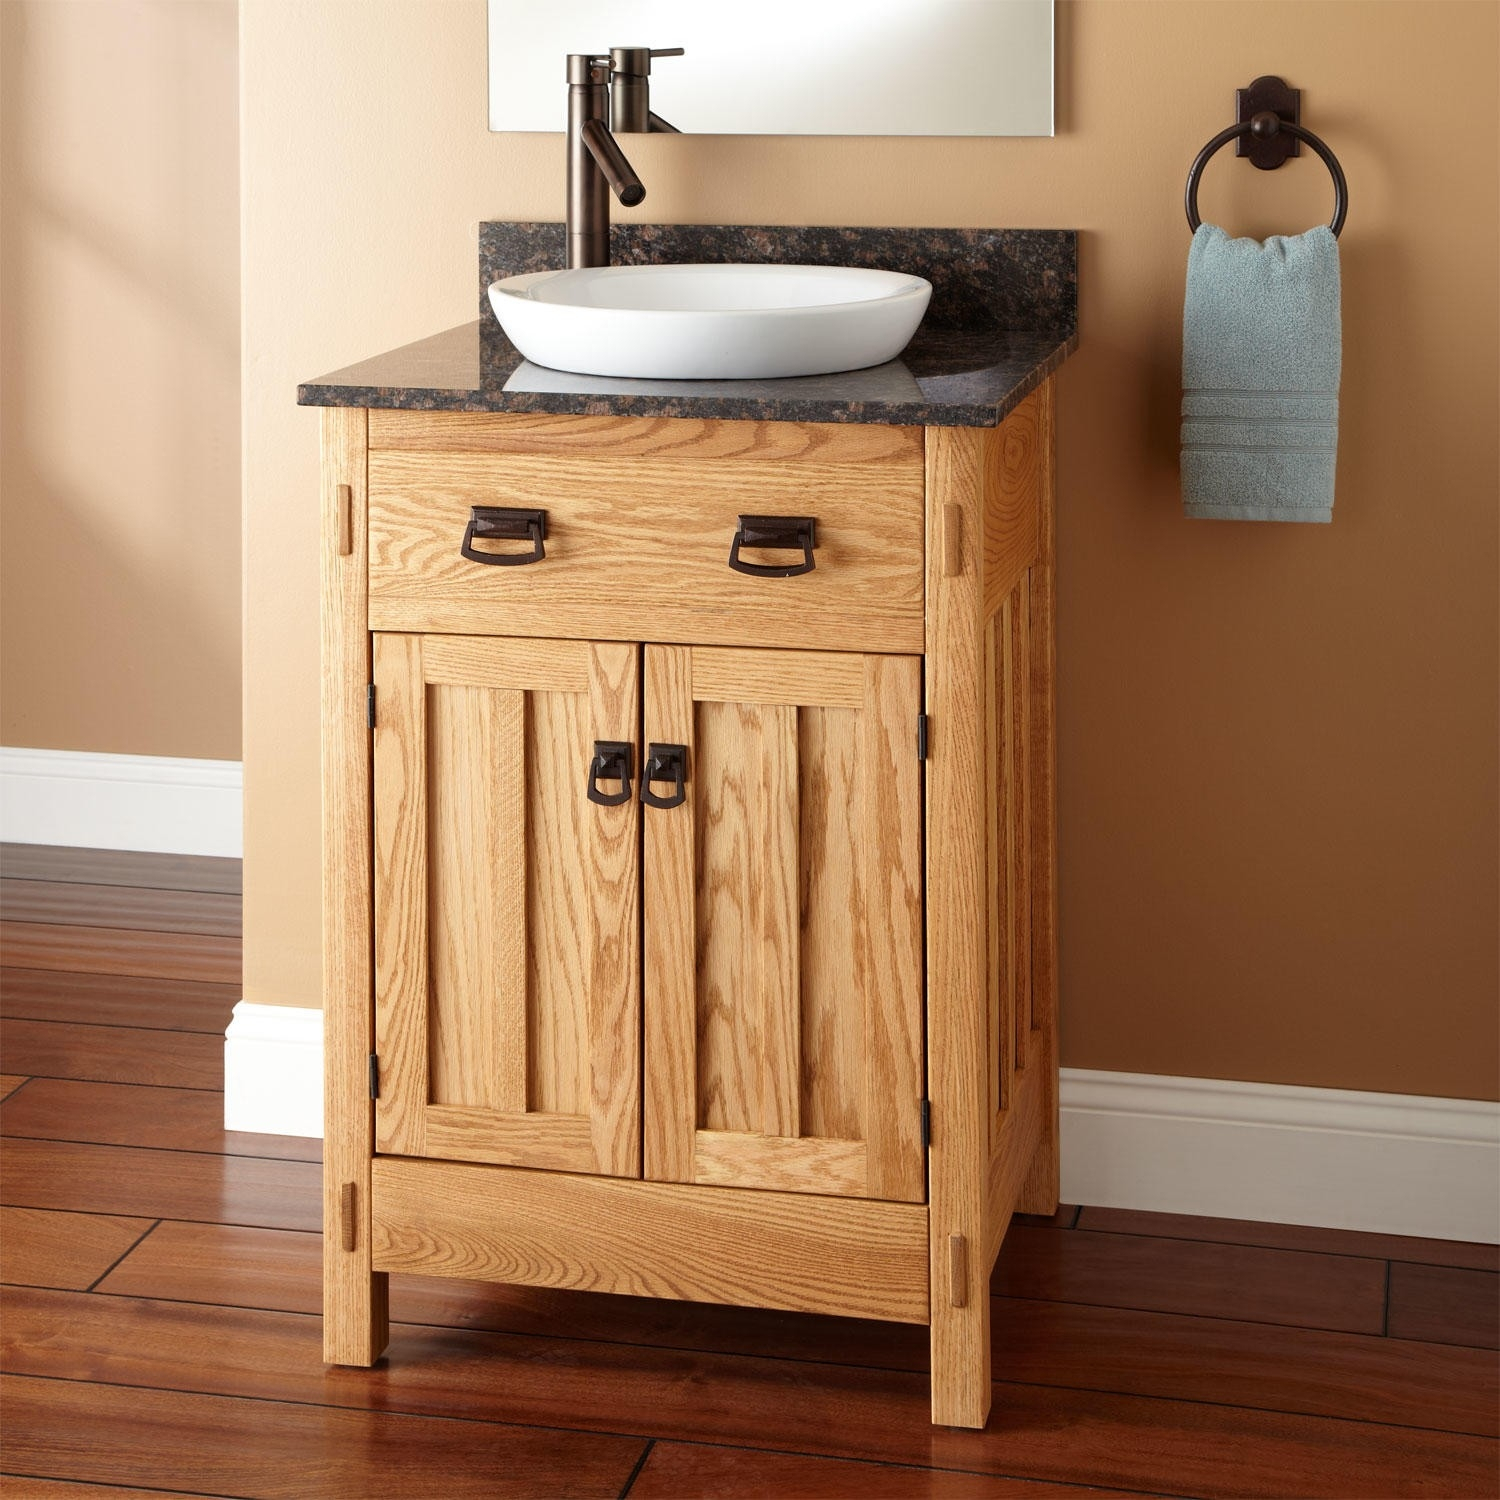 Modern 36 Mission Style Bathroom Vanity | Modern Bathroom Decoration intended for Mission Style Bathroom Vanity